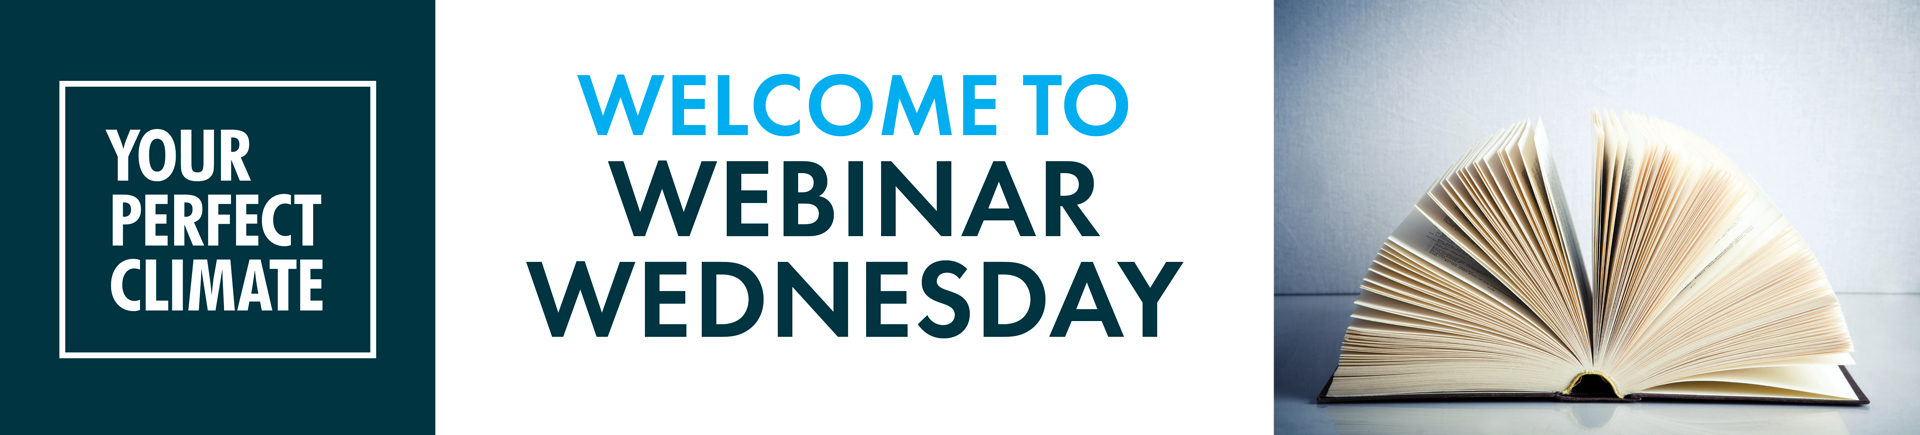 WELCOME-TO-Webinar-Wednesday_HEADER.jpg